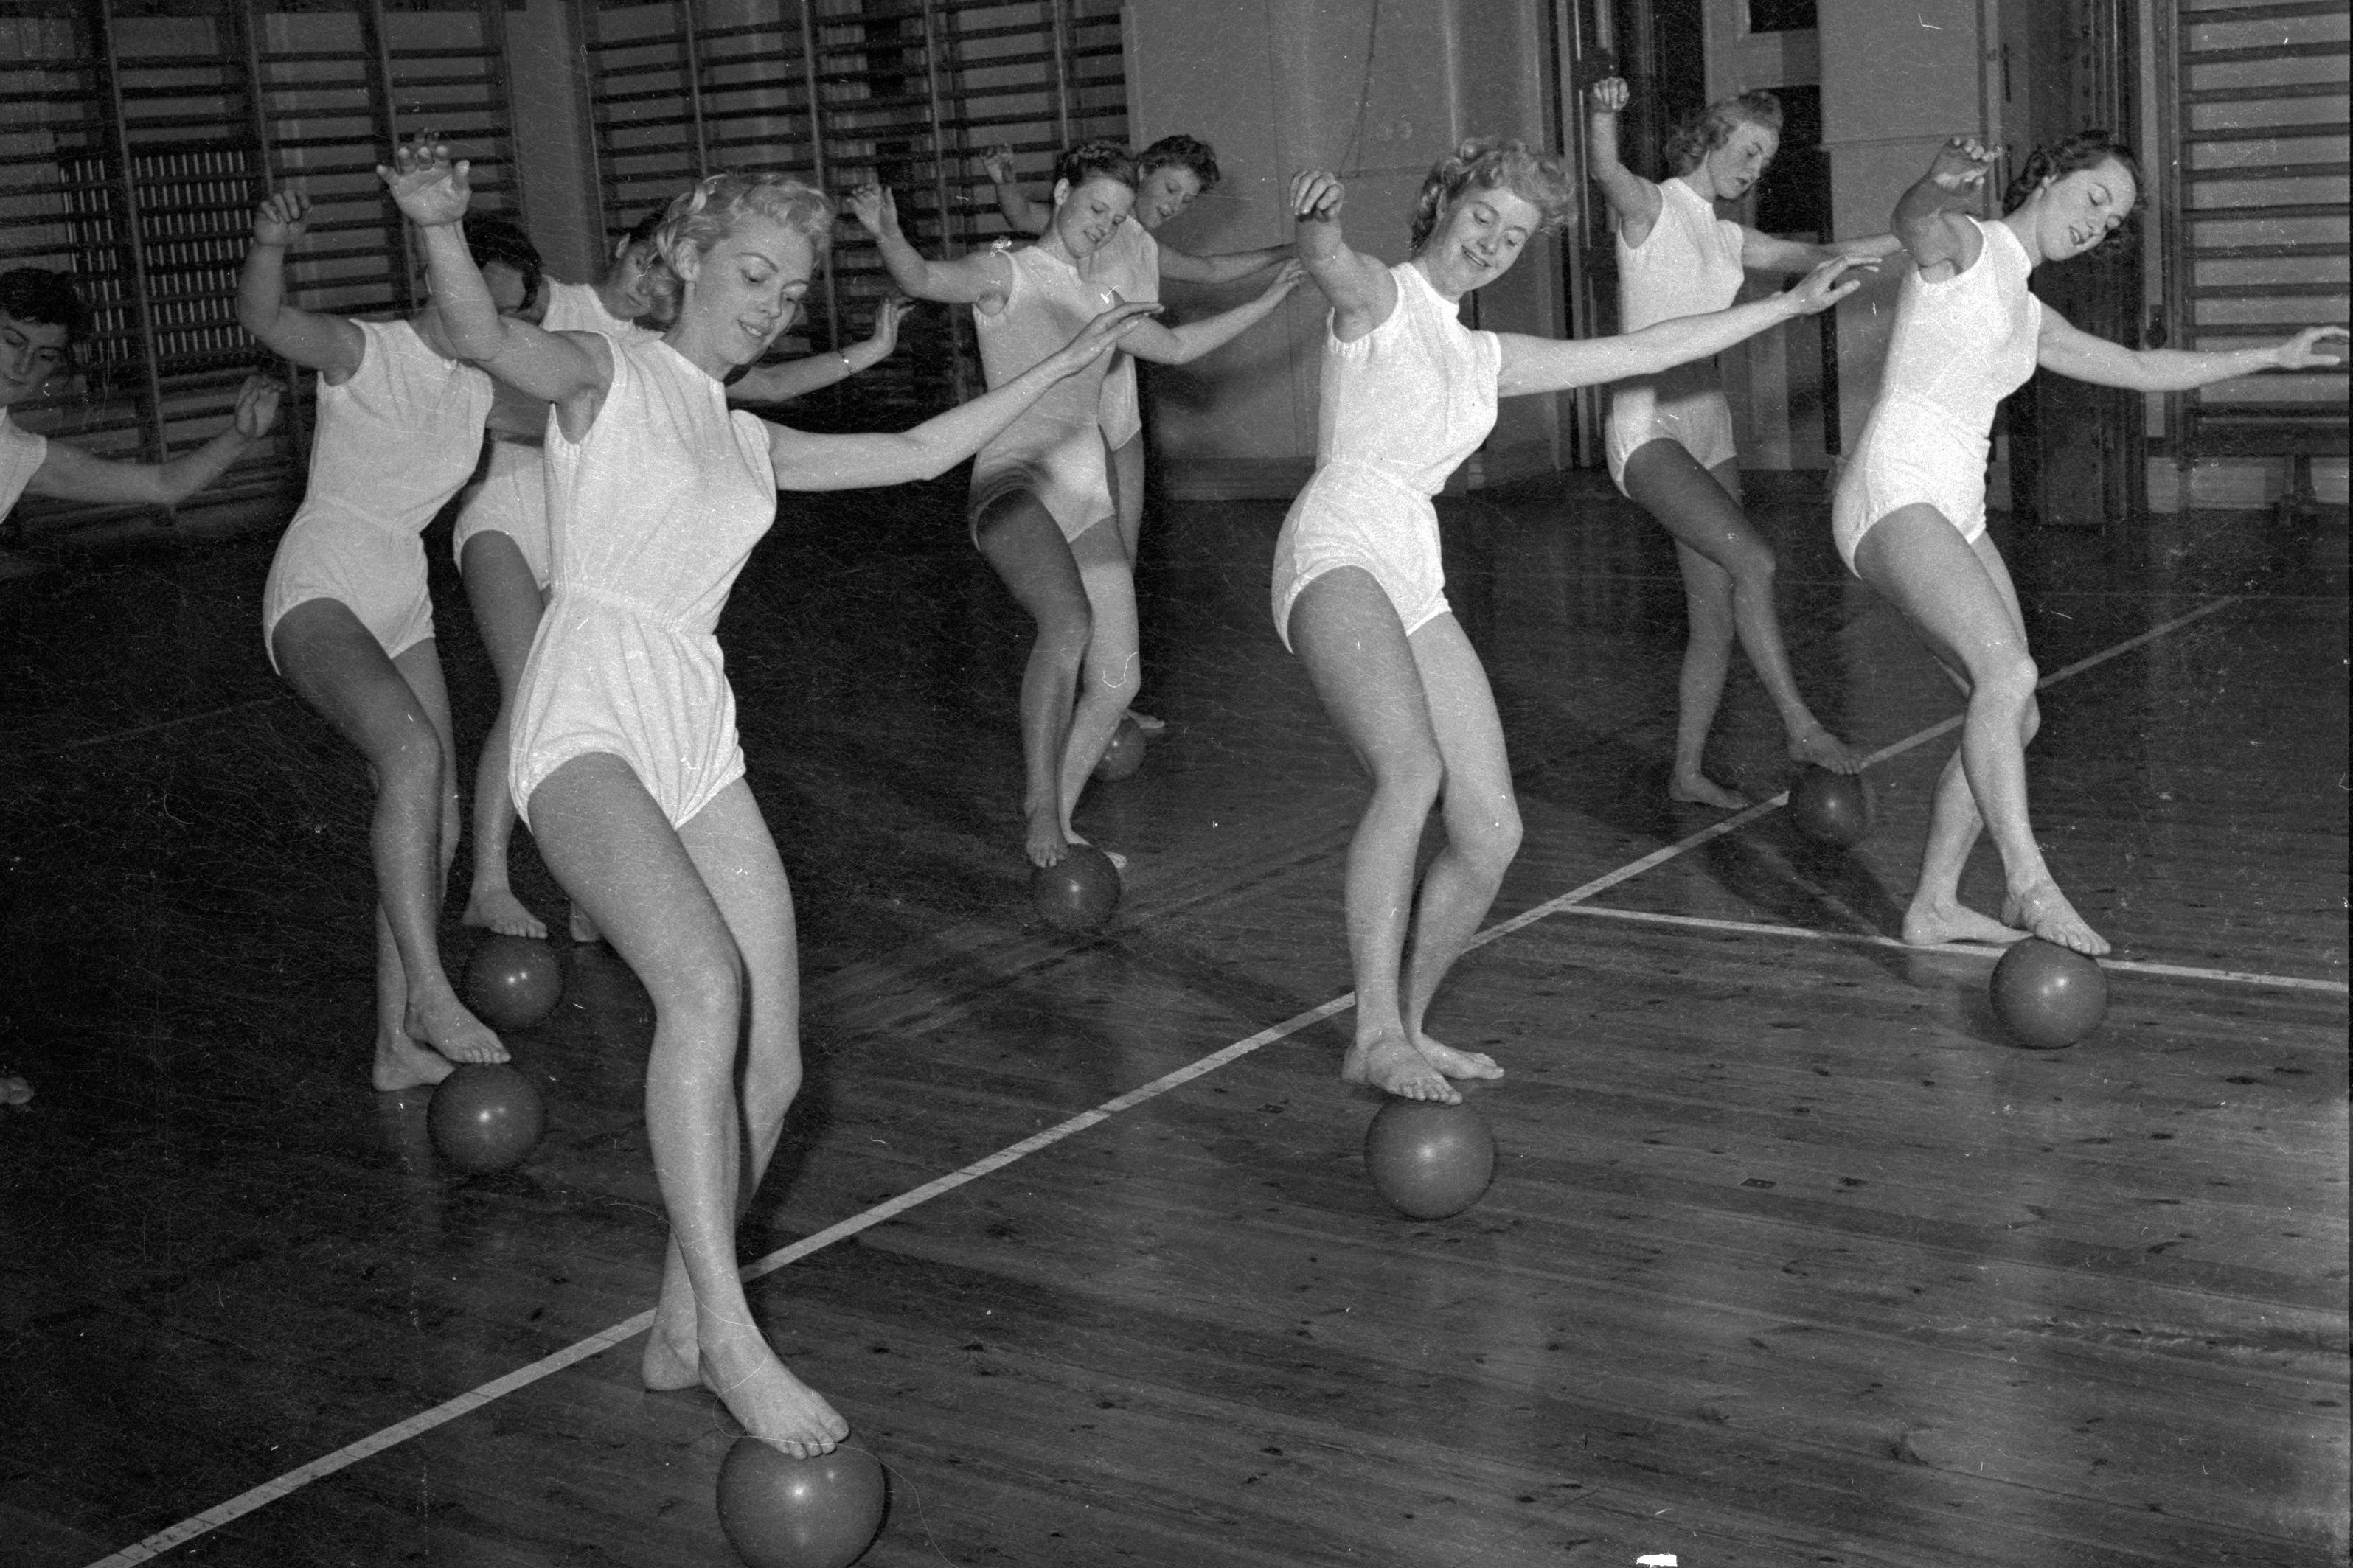 A Southern Girl's Workout—Then and Now